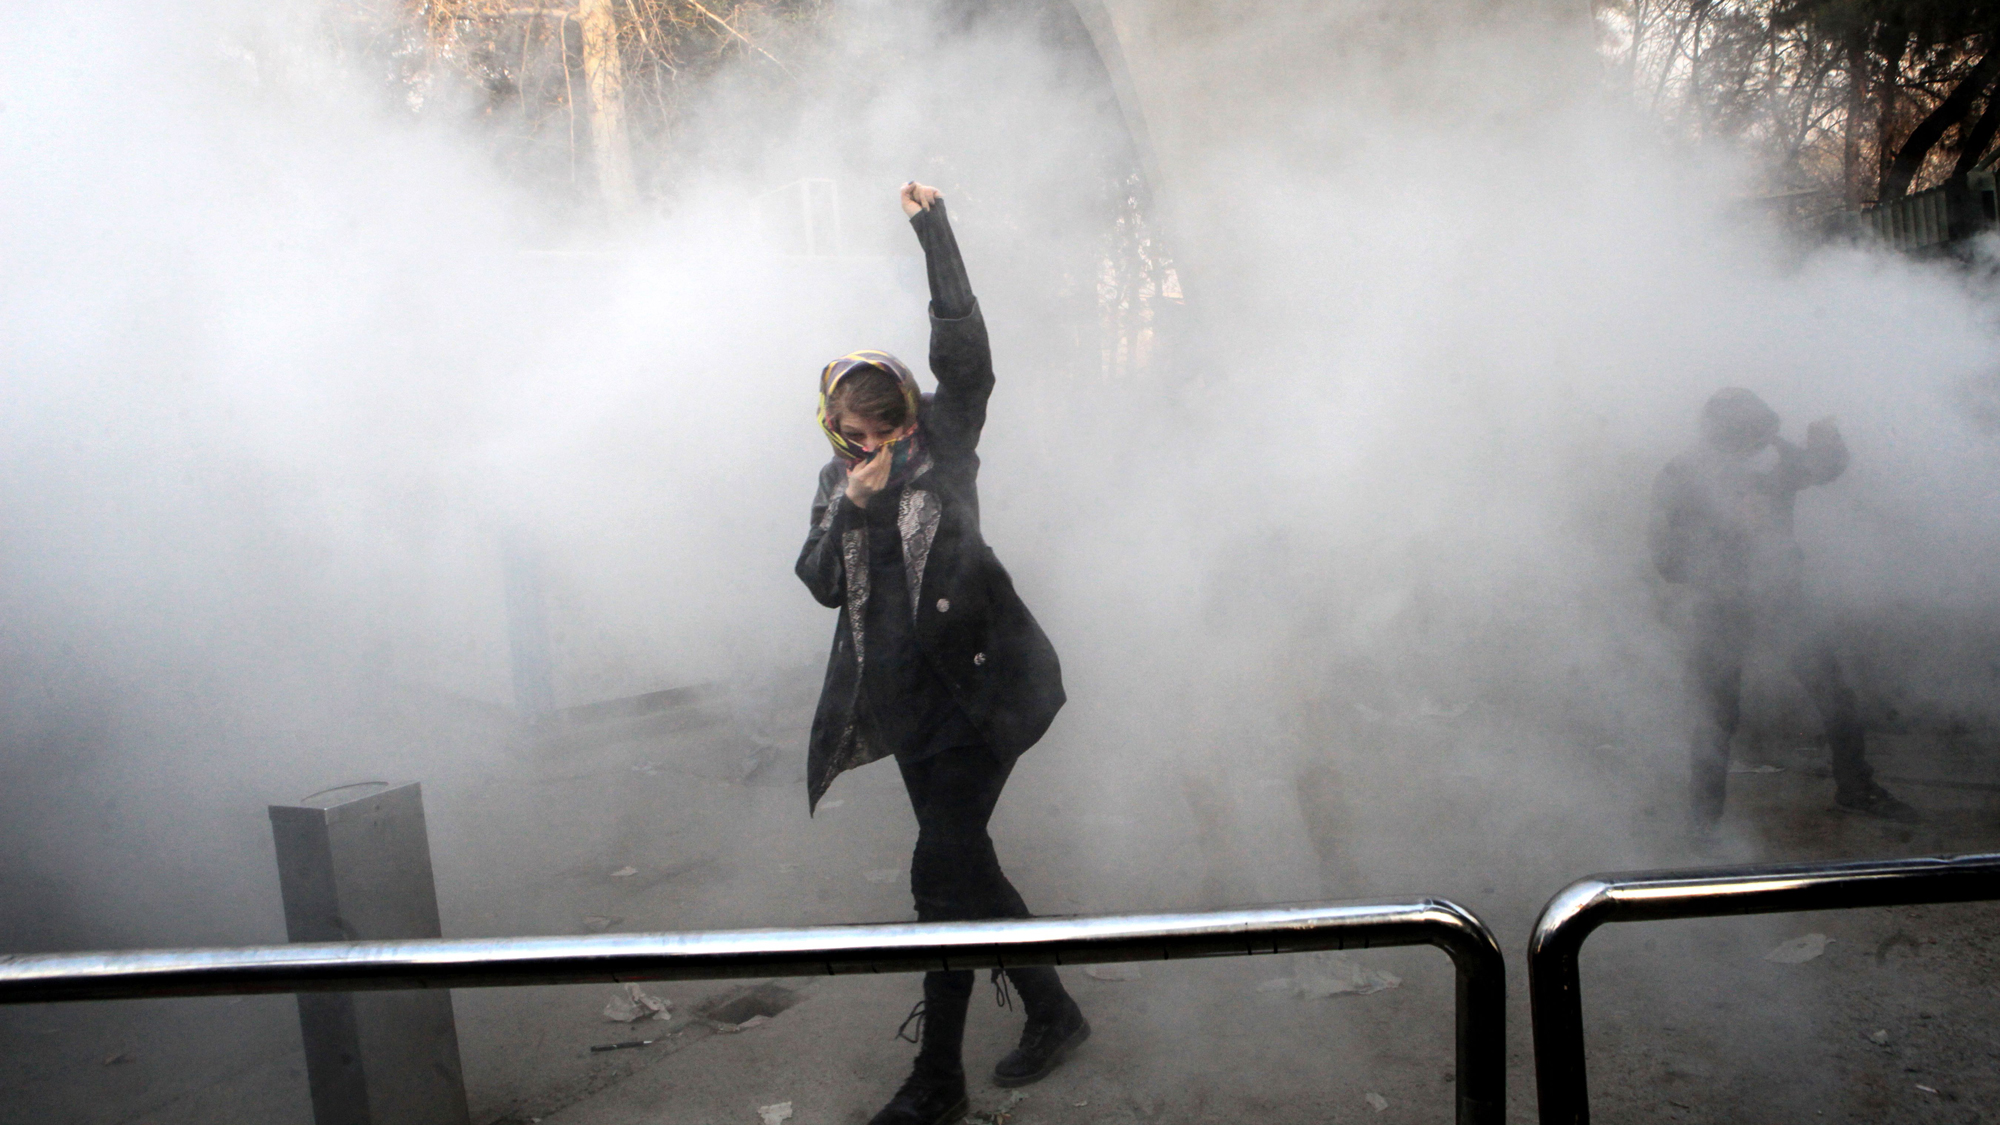 An Iranian woman raises her fist, covering her face with a scarf, as smoke surrounds her.